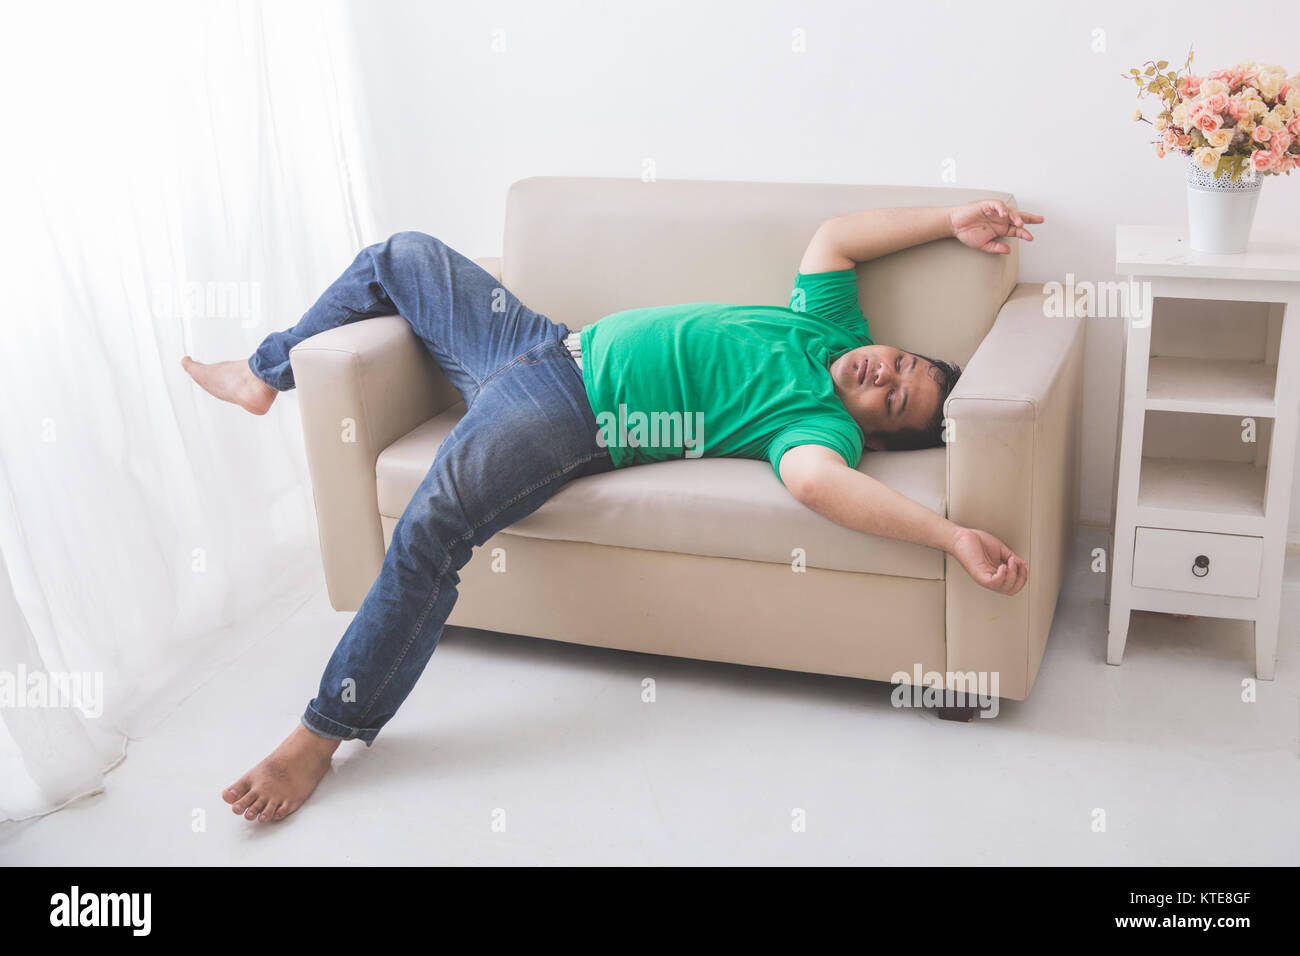 lazy Fat obese man sleeping on the couch - Stock Image